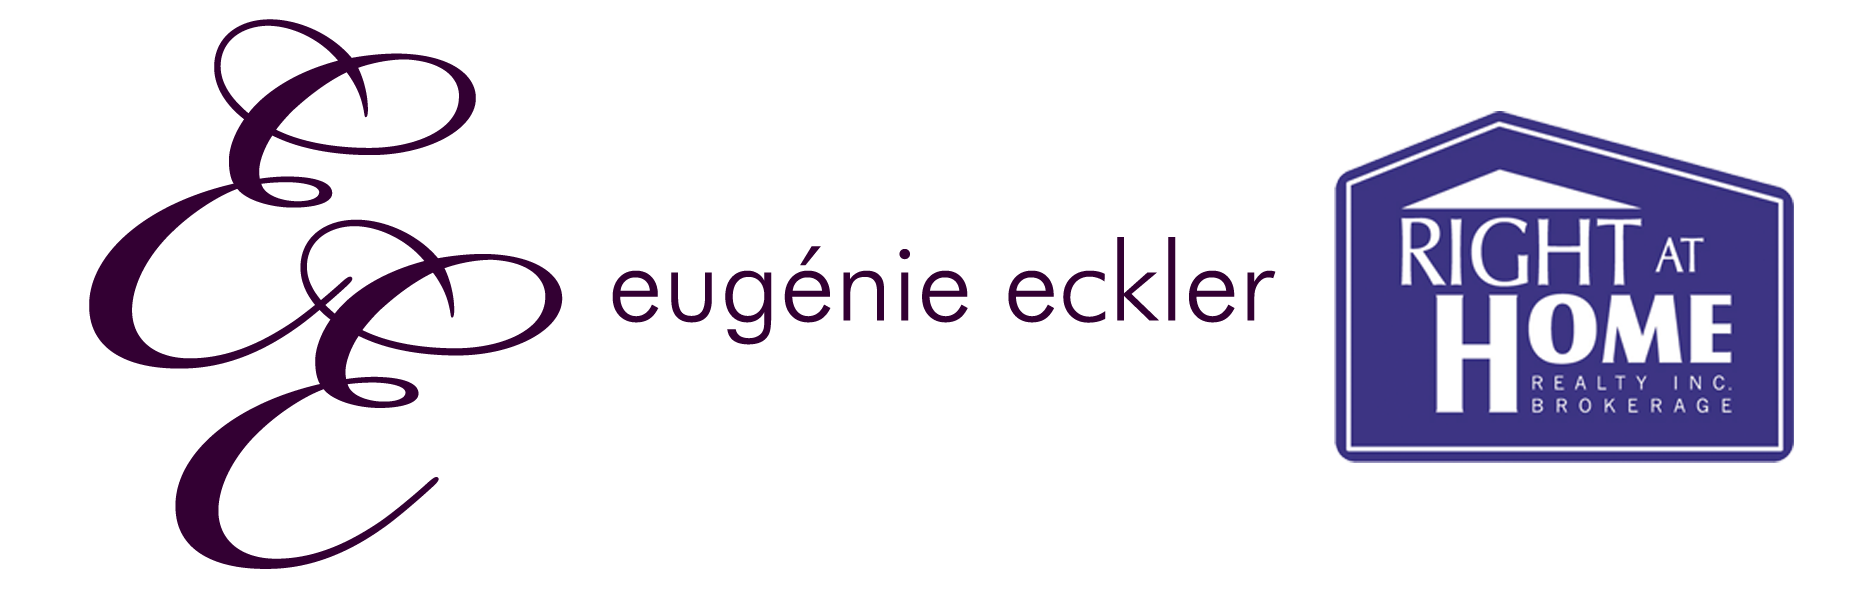 Eugénie Eckler, Salesperson - Right at Home Realty